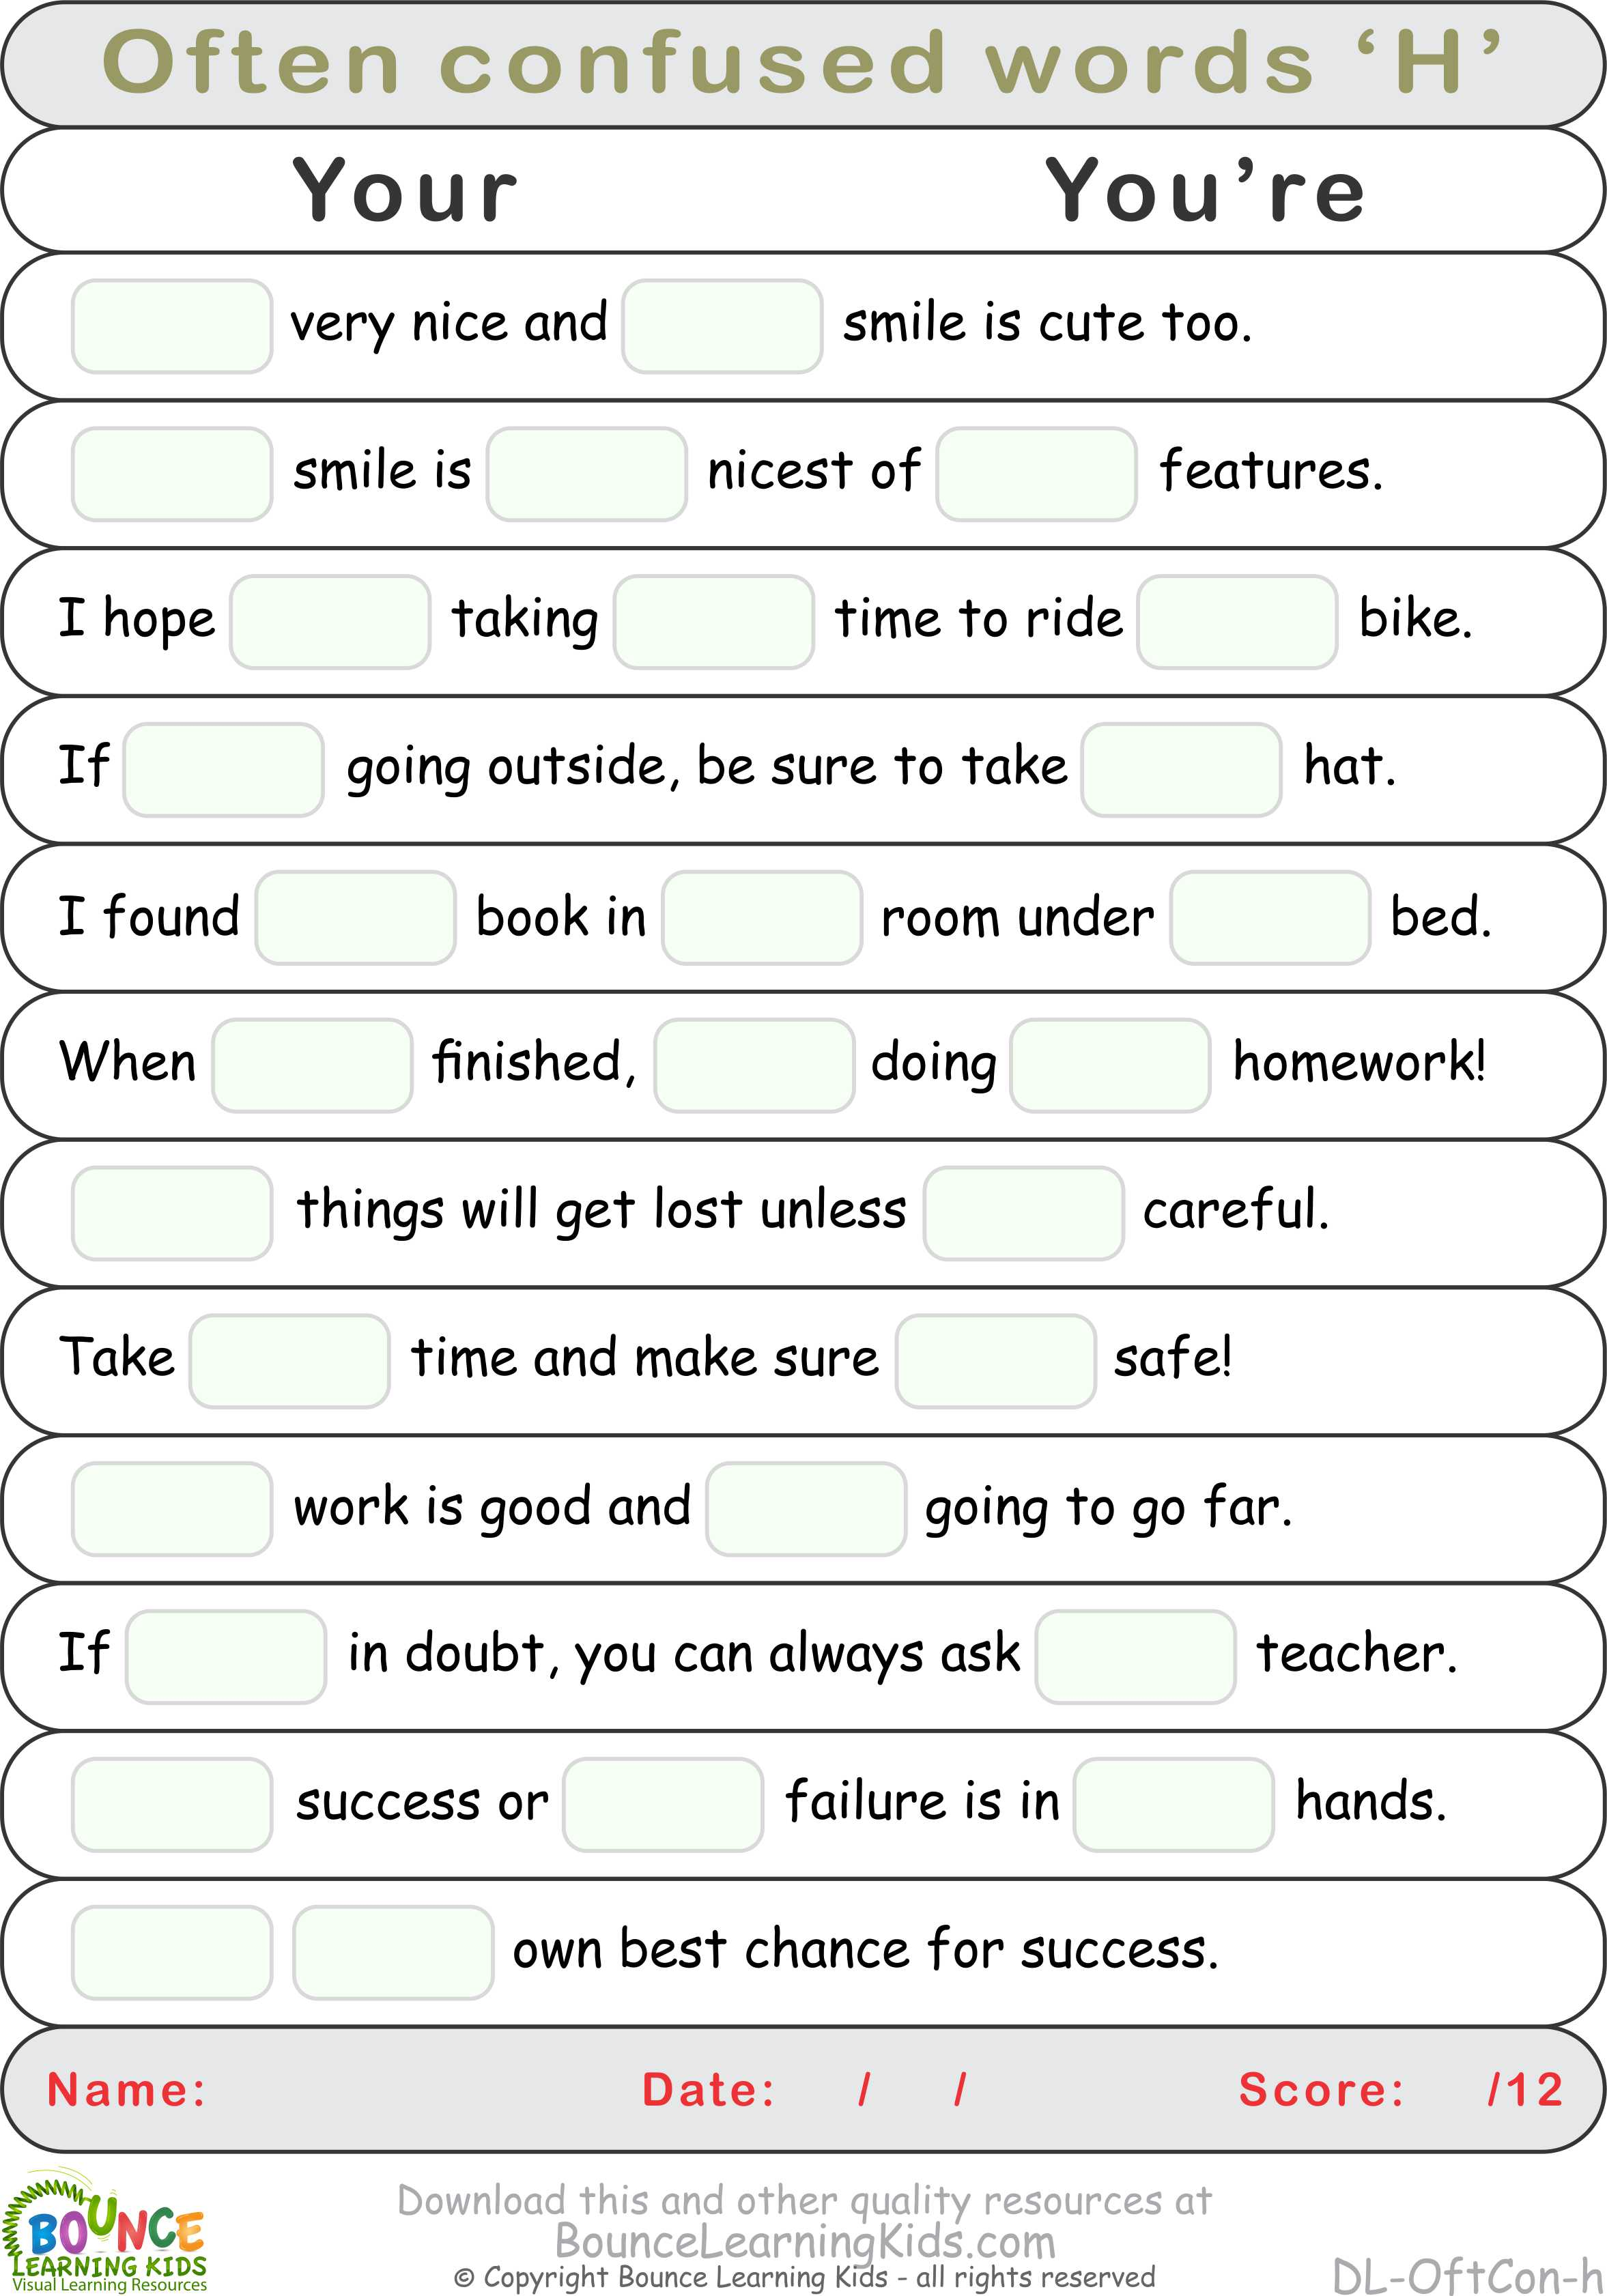 Often Confused Words H